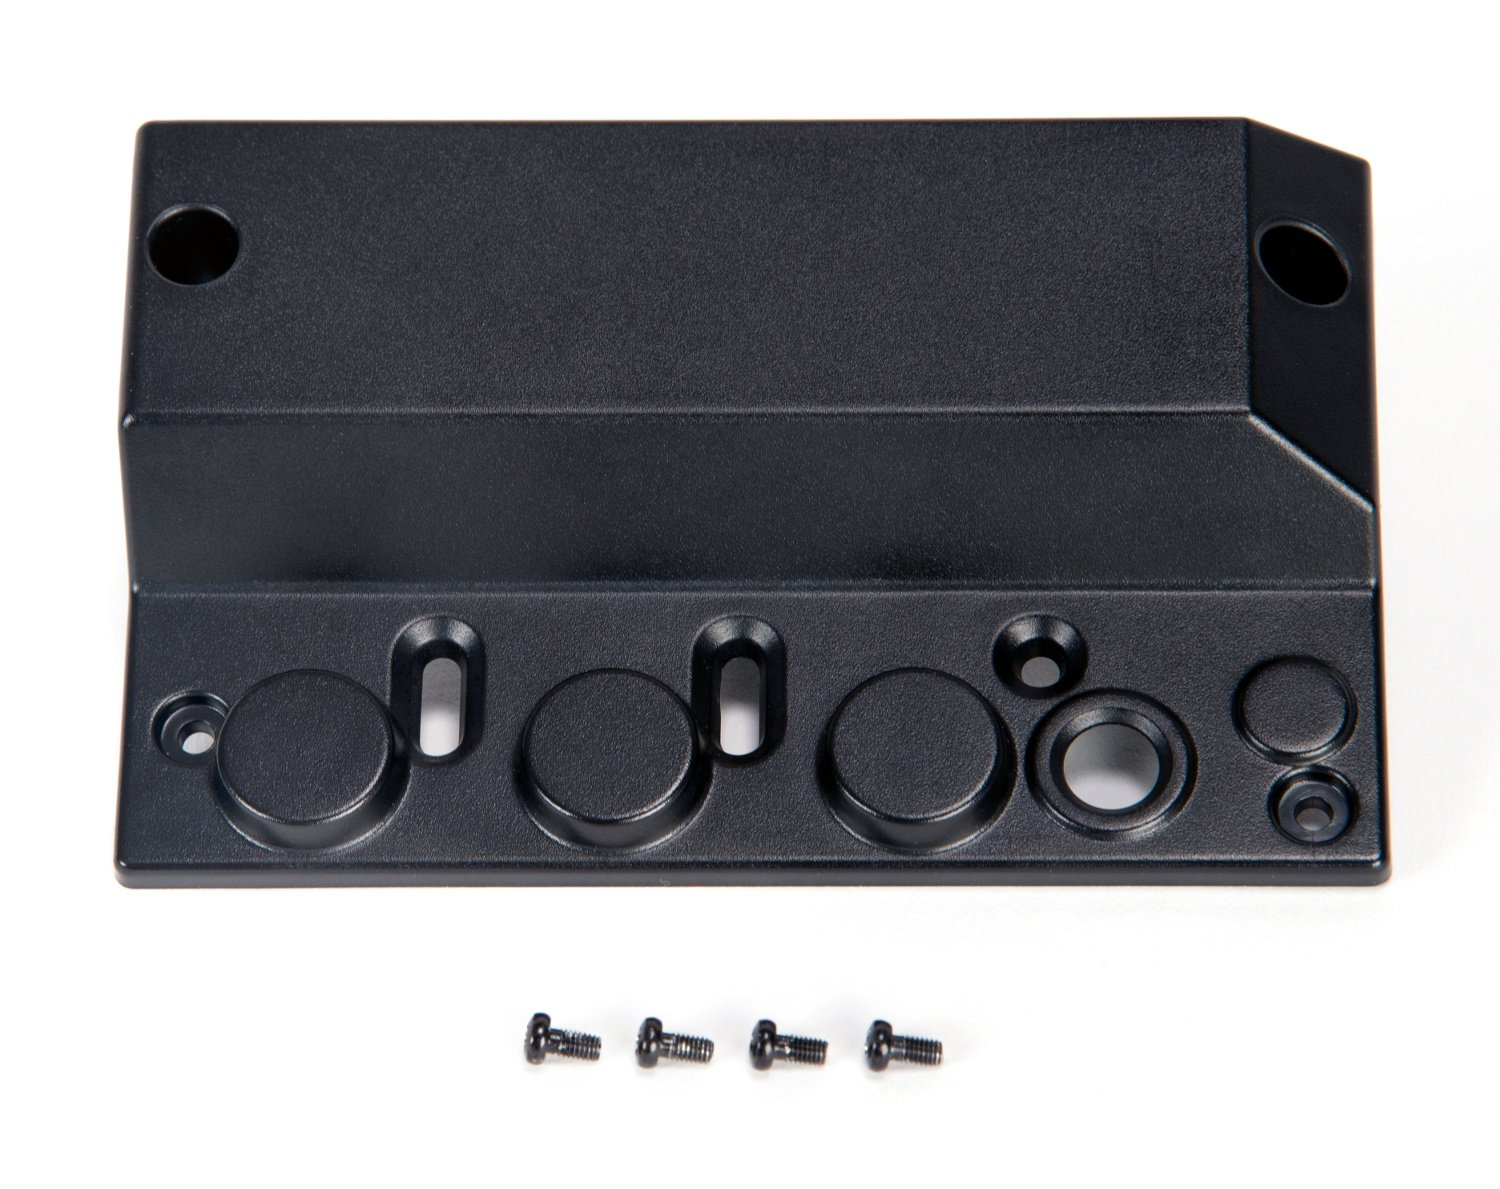 QSC K.2-LOC Security Cover for QSC K.2 Series Speakers K.2-LOC